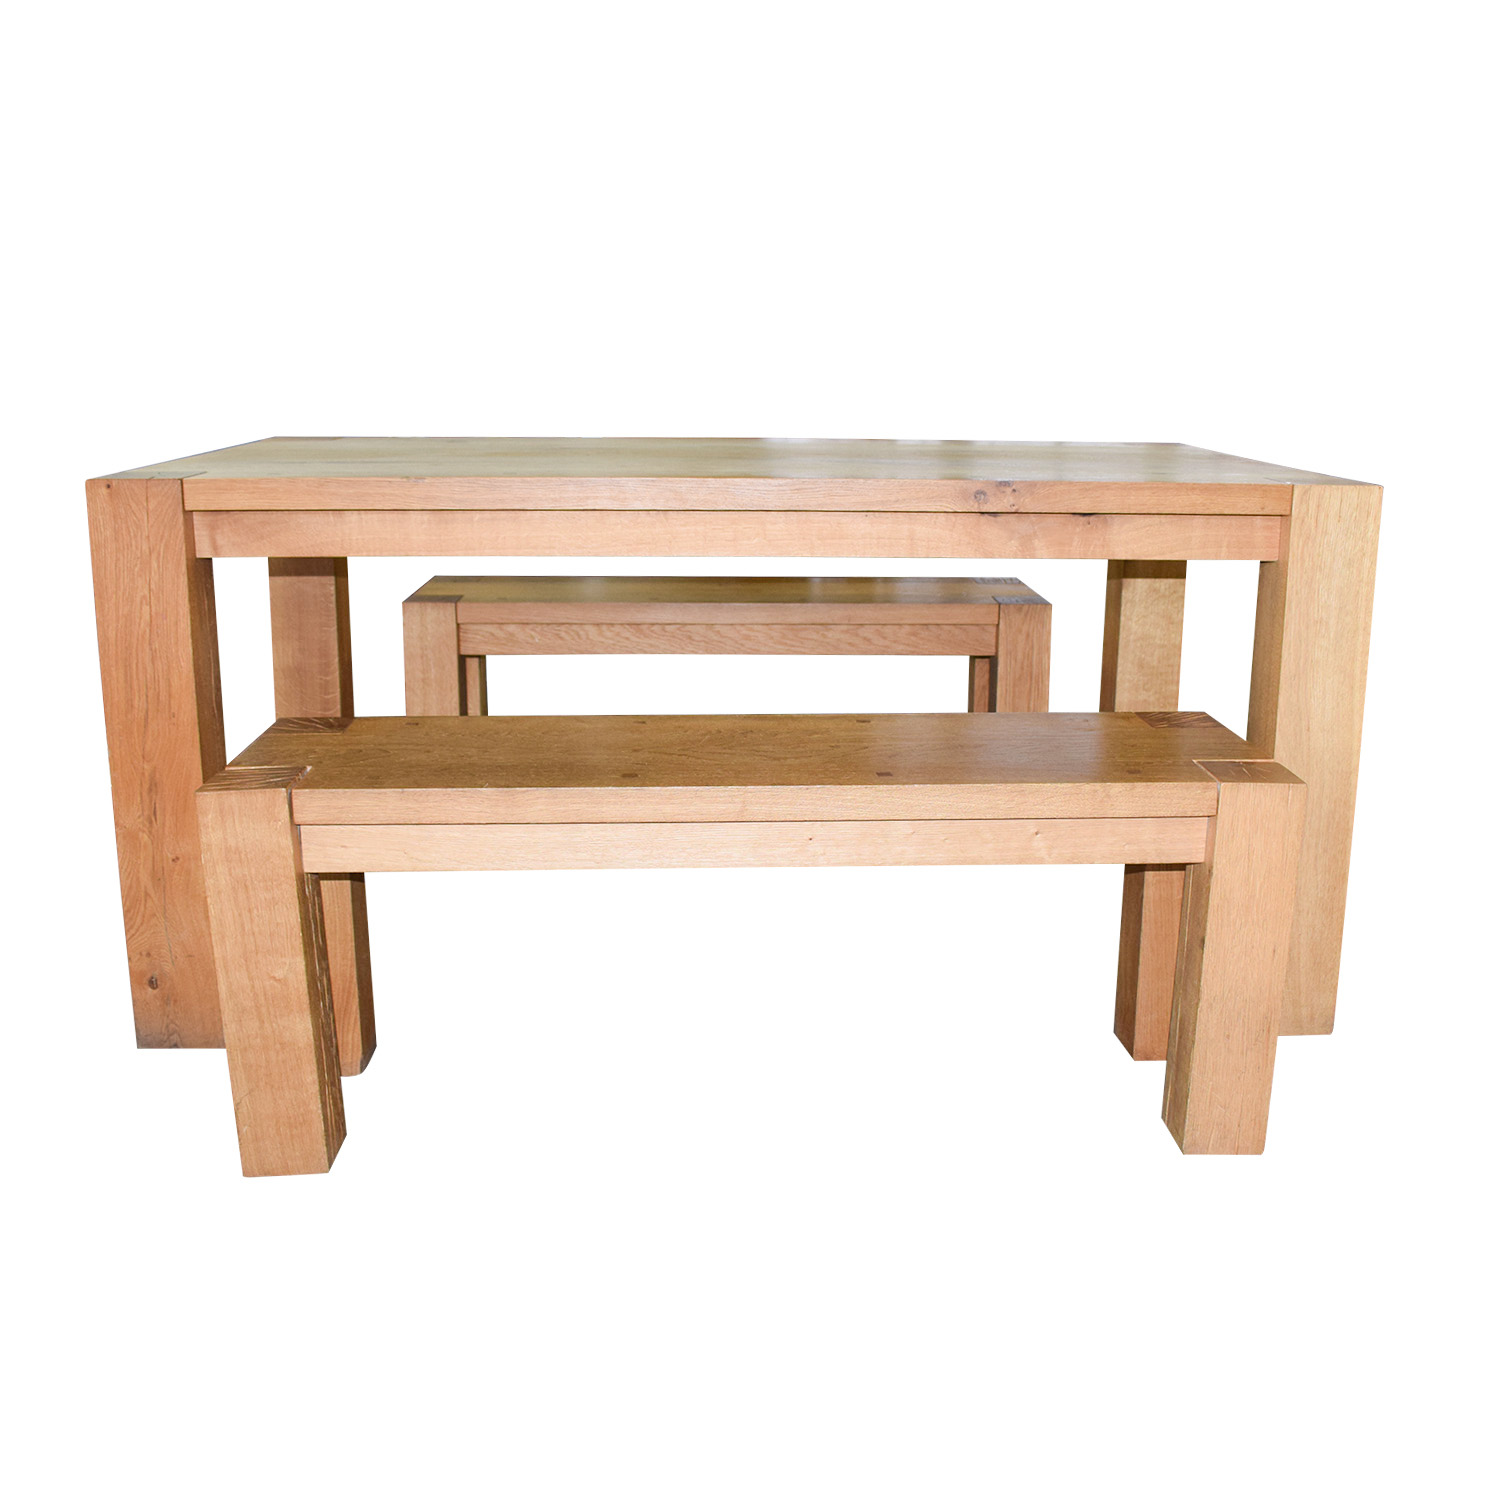 Crate & Barrel Crate & Barrel Big Sur Natural Dining Table with Benches discount